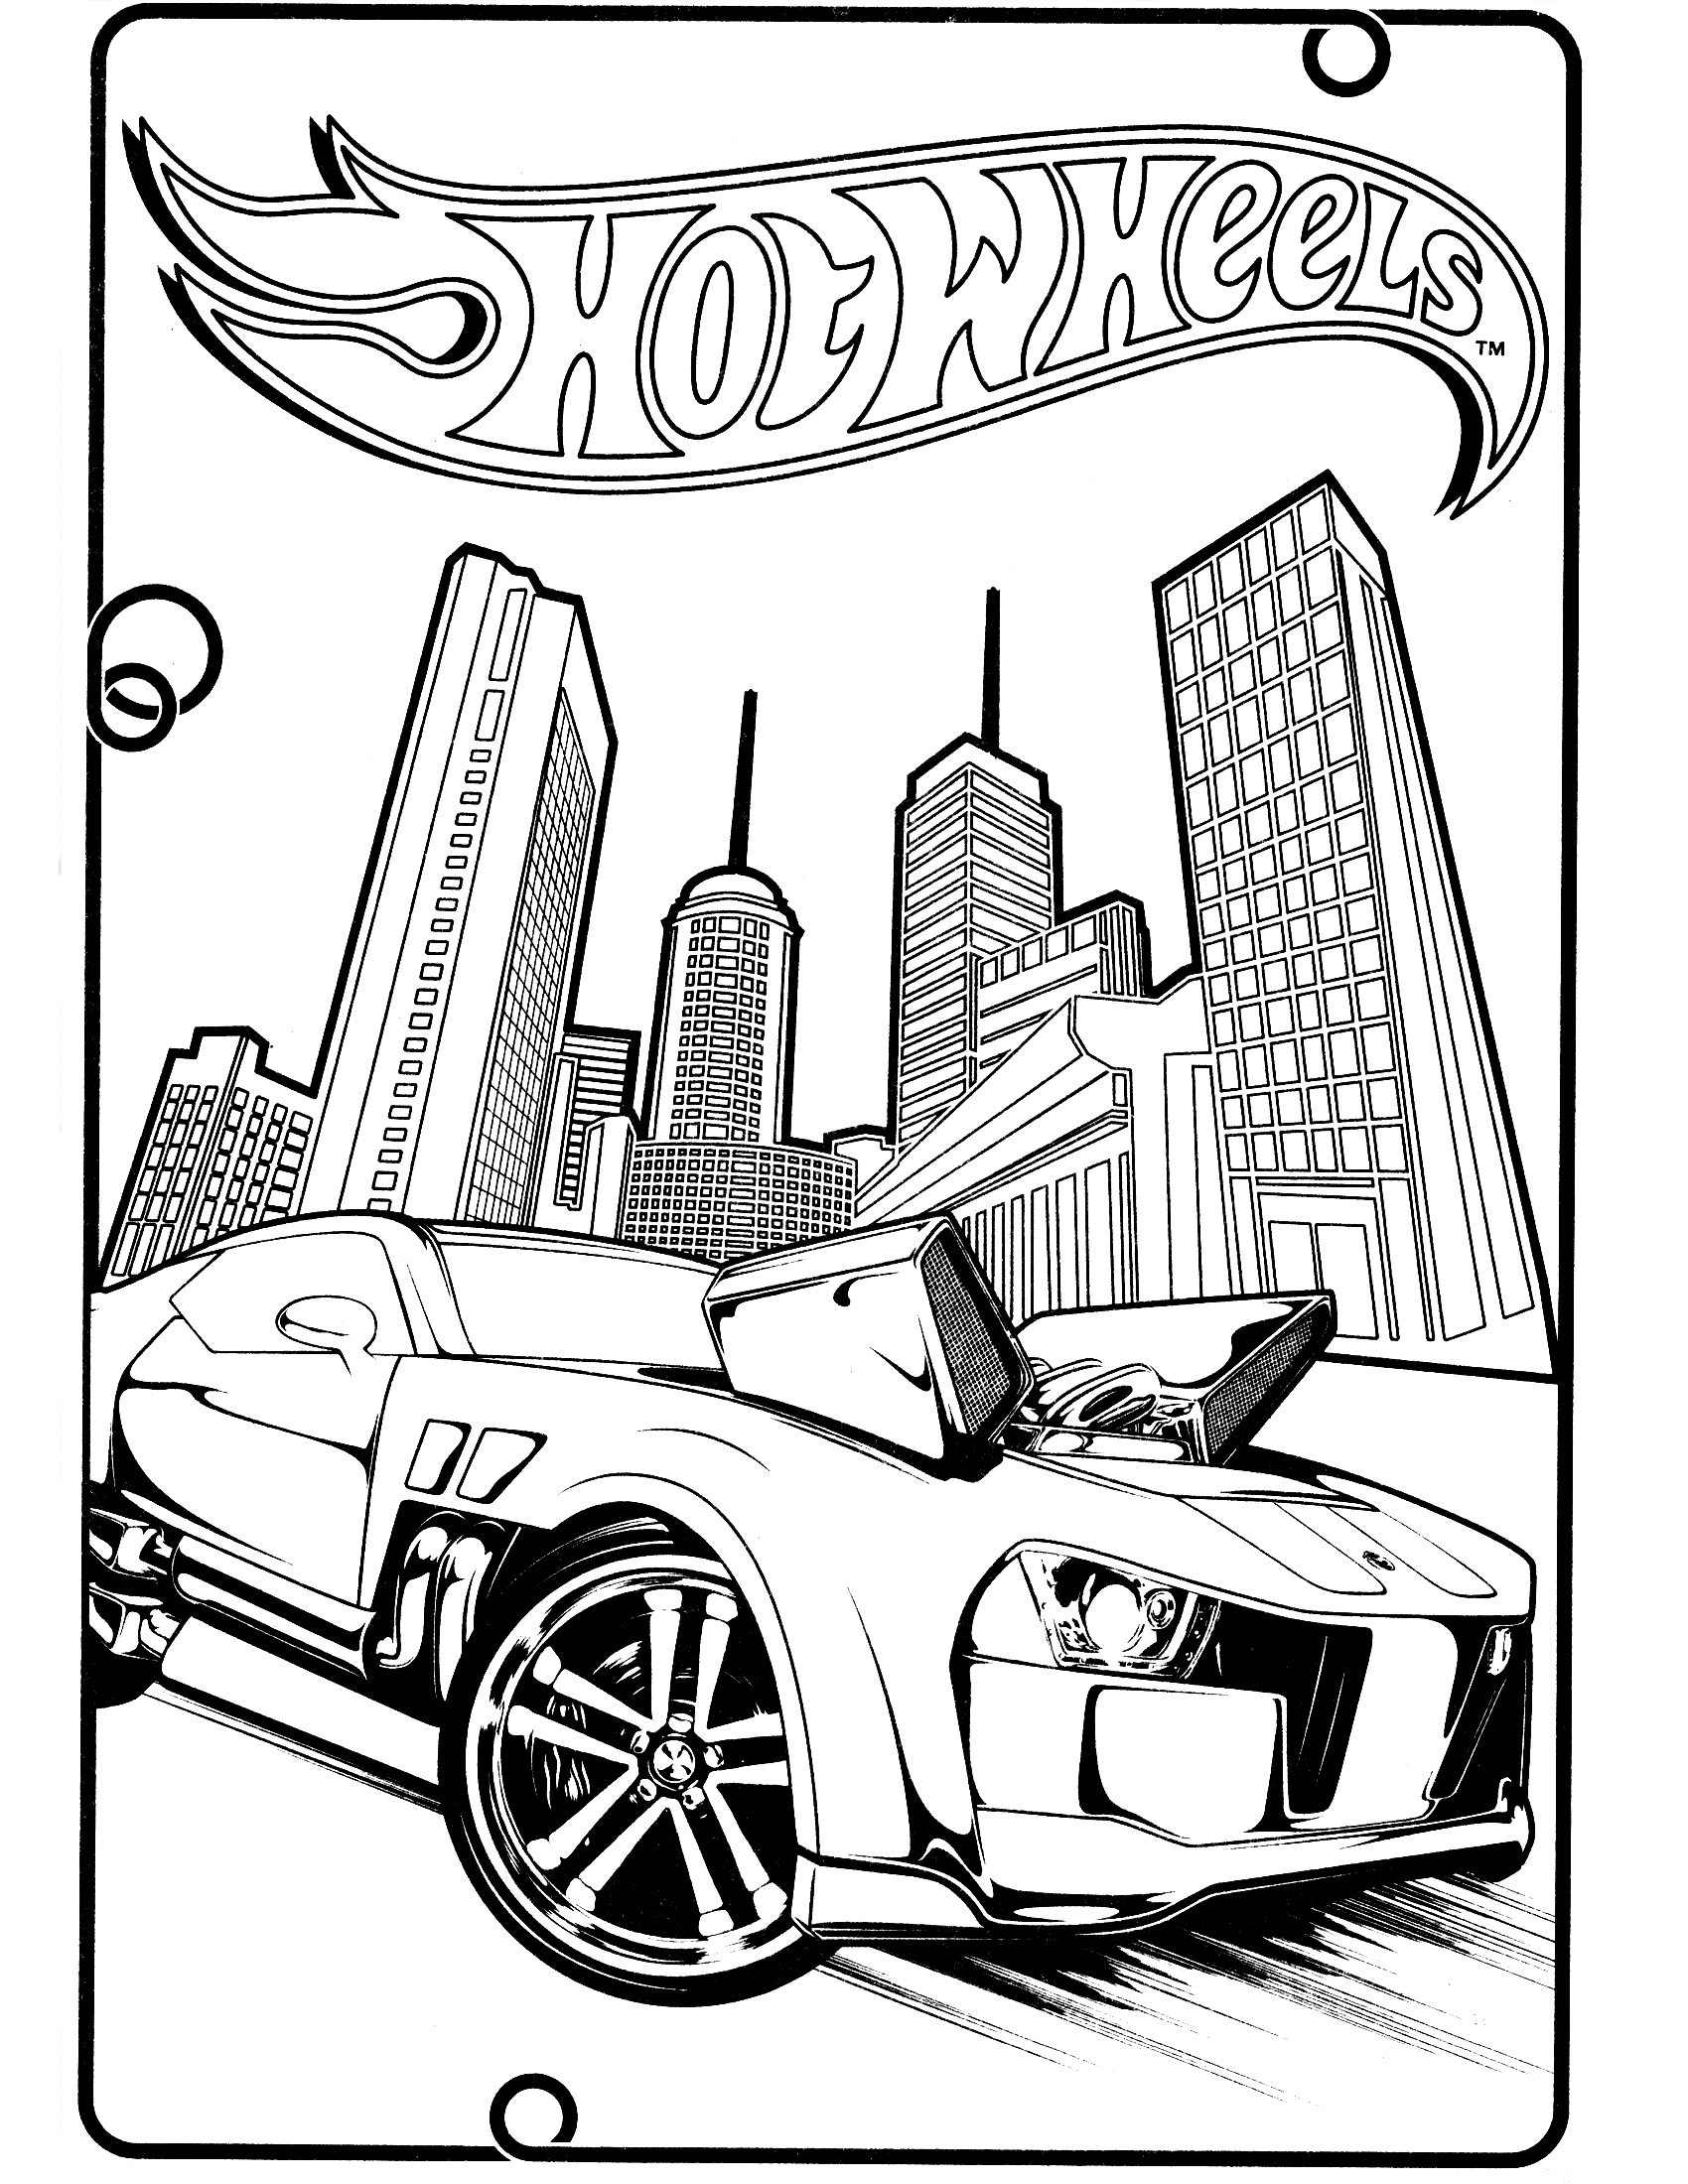 hotwheels coloring pages hot wheels racing league hot wheels coloring pages set 5 hotwheels coloring pages